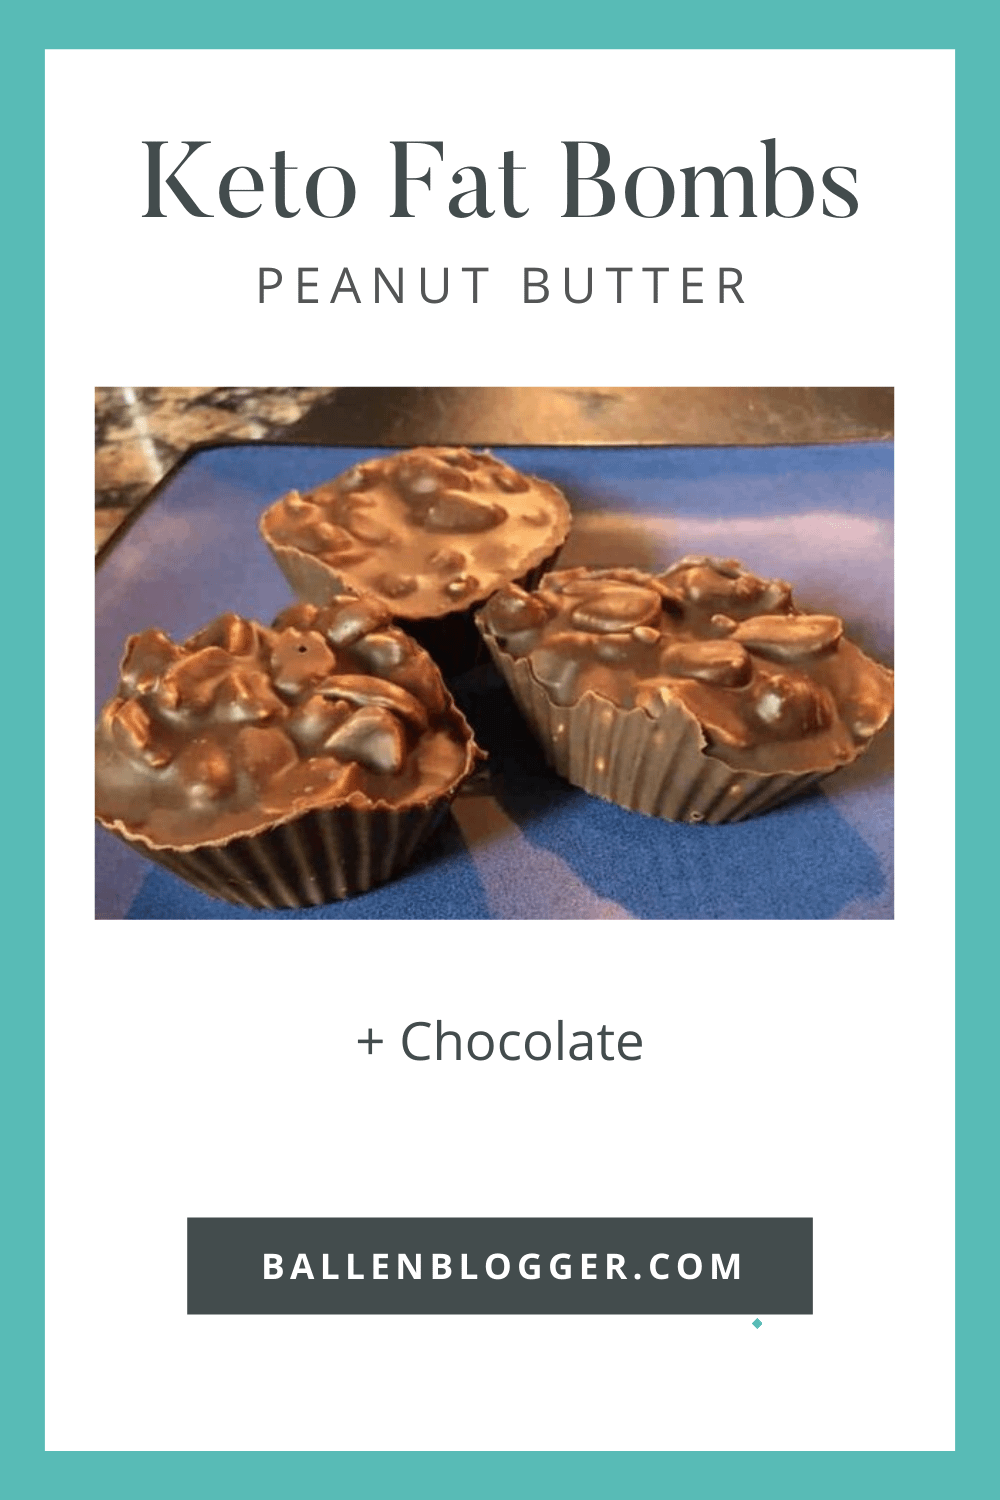 Enjoy these Dark Chocolate Peanut Cluster Fat Bomb Keto Recipe. You can use almonds instead of peanuts if you like.